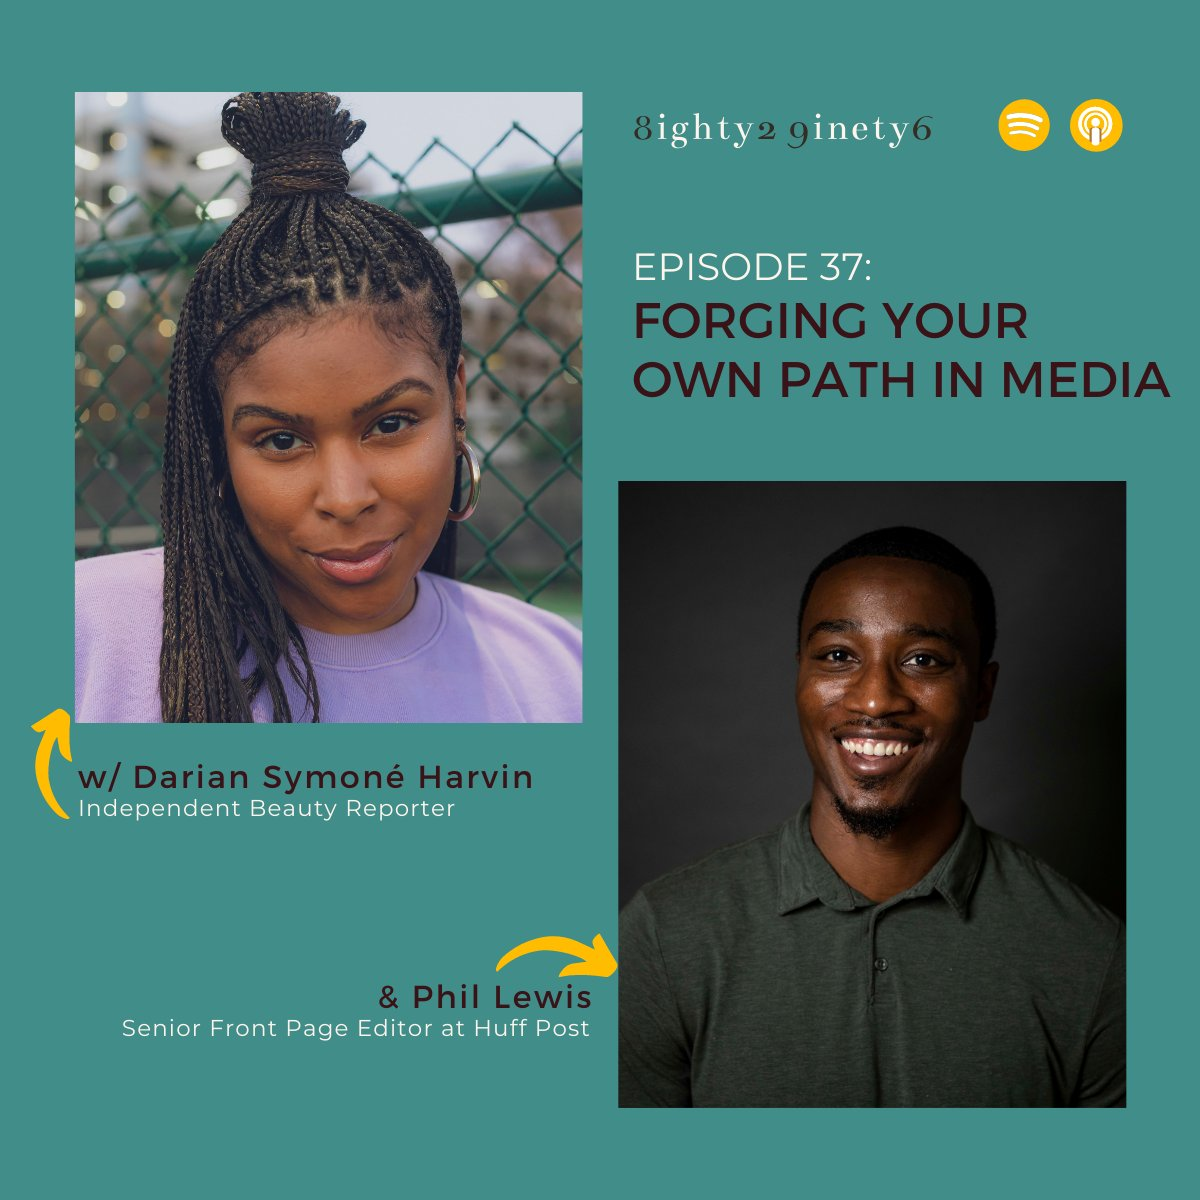 First the Clubhouse room, now the episode! Listen to Episode 37 Forging Your Own Path in Media featuring @Phil_Lewis_ and @dariansymone. 💎💎💎 bit.ly/8296apple bit.ly/8296spotify